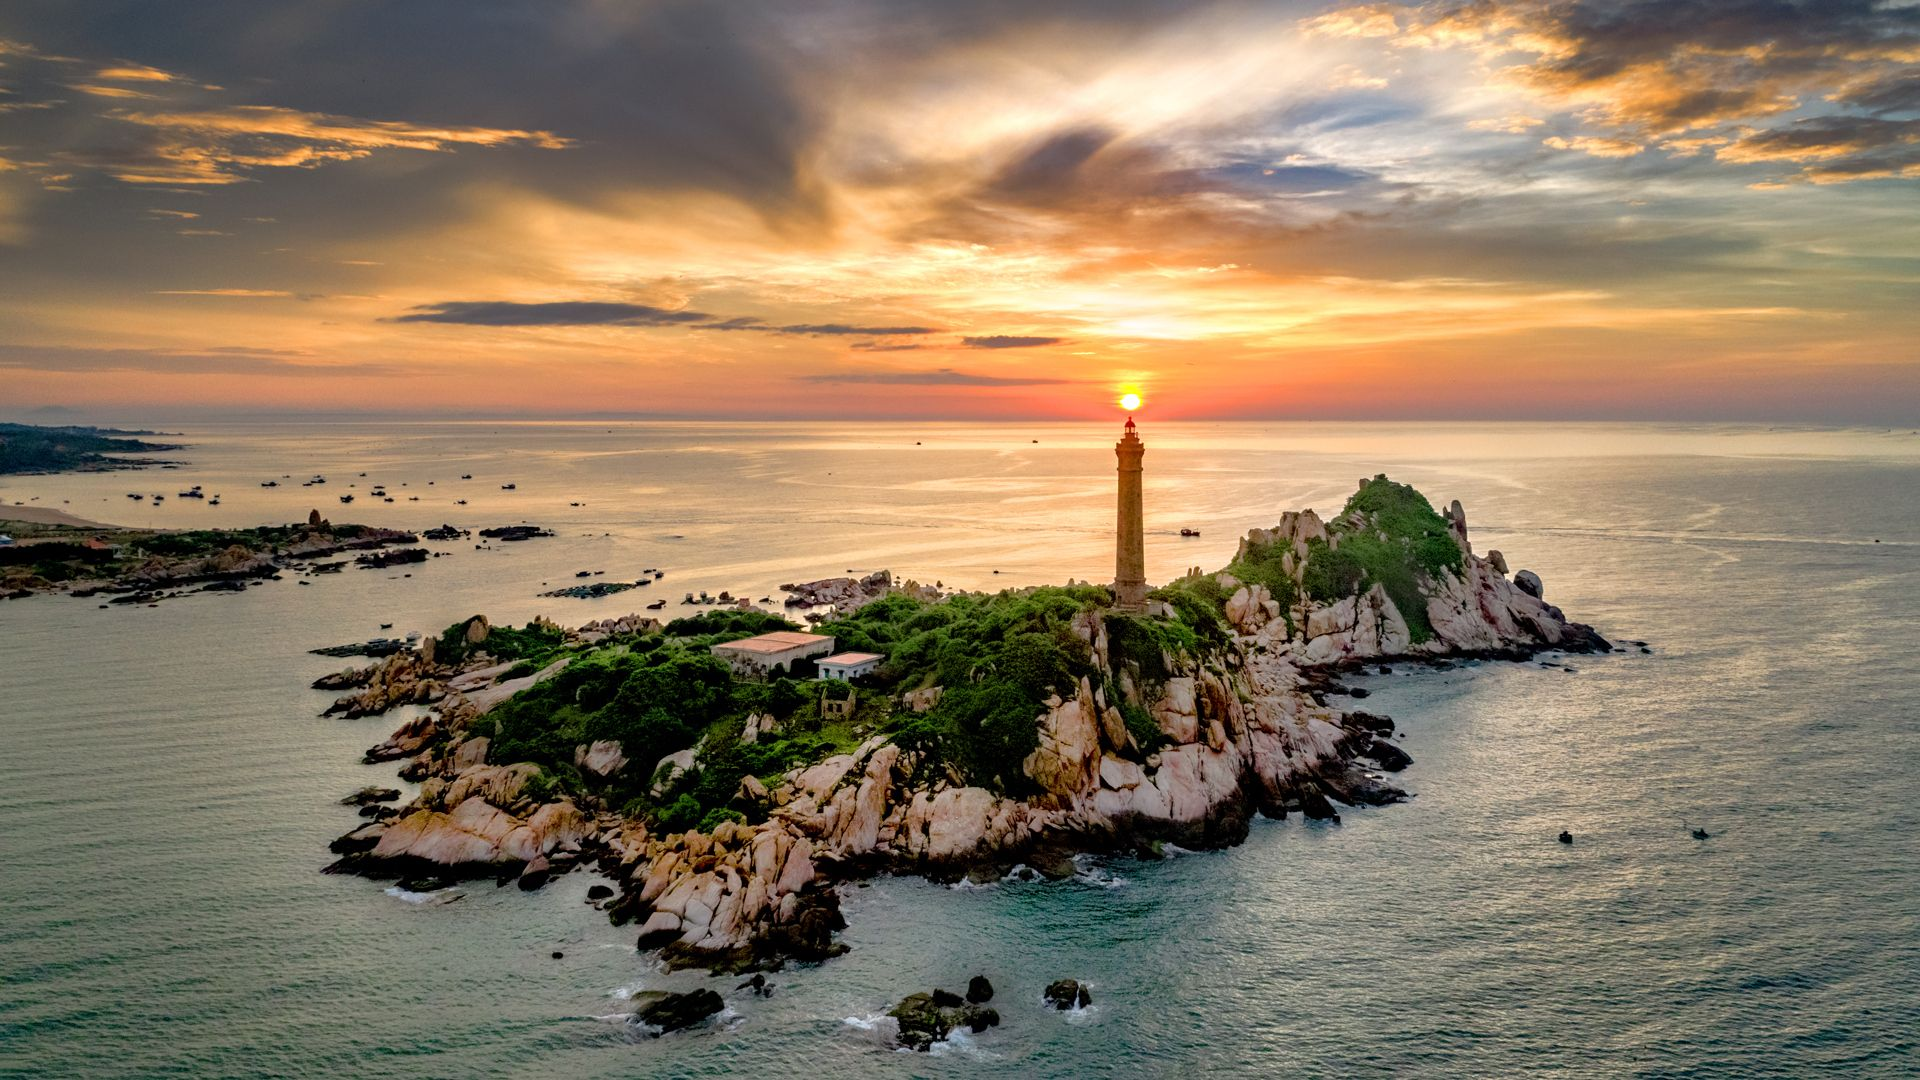 lighthouse ke ga phanThiet